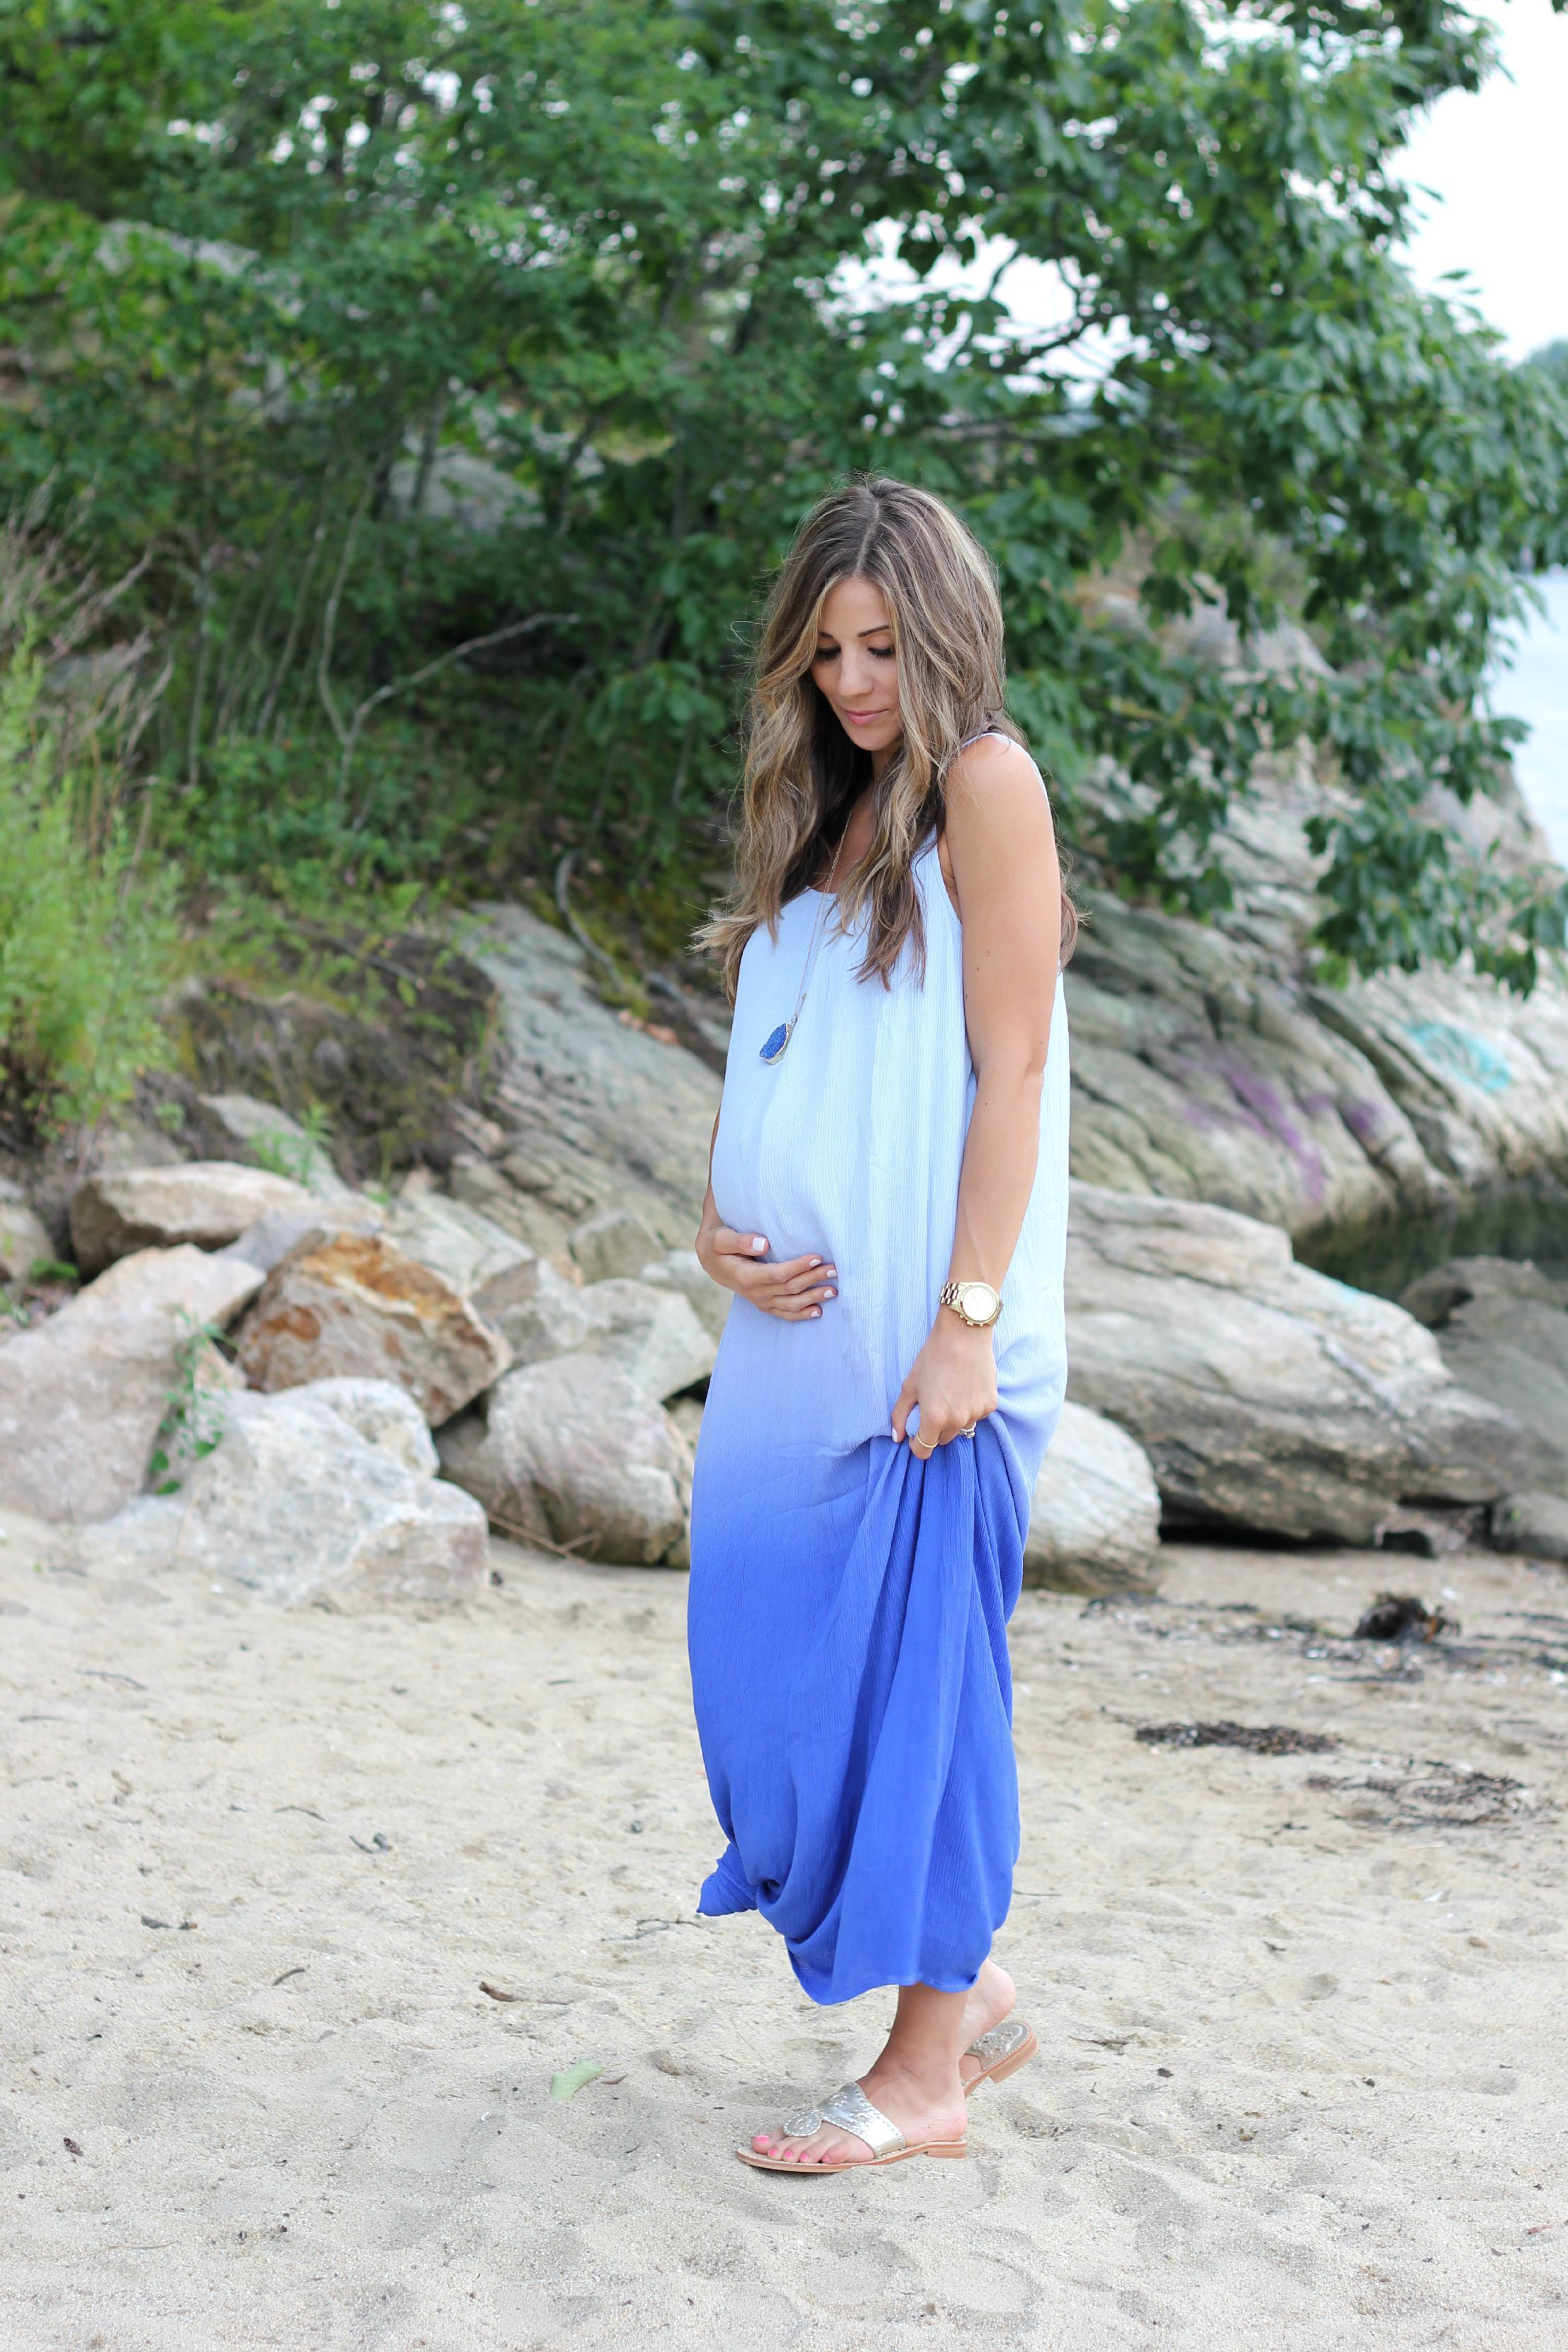 6d8a663f1f Are you looking for the best maternity clothing stores? Lifestyle blogger  Lauren McBride has compiled the perfect maternity clothing store list!